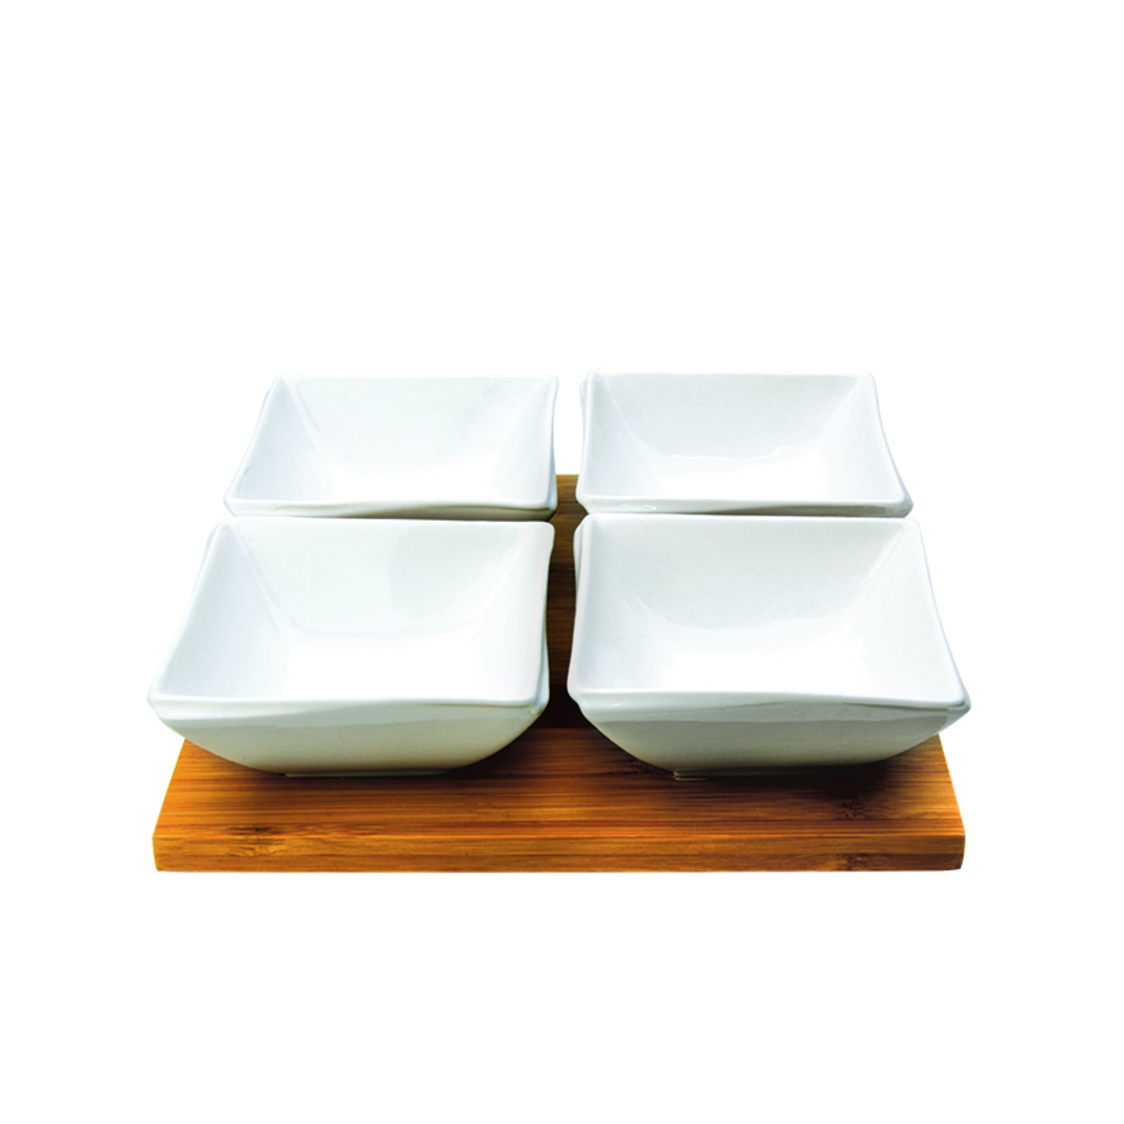 Grid 4 Condiment Bowls On Bamboo Base SR-61